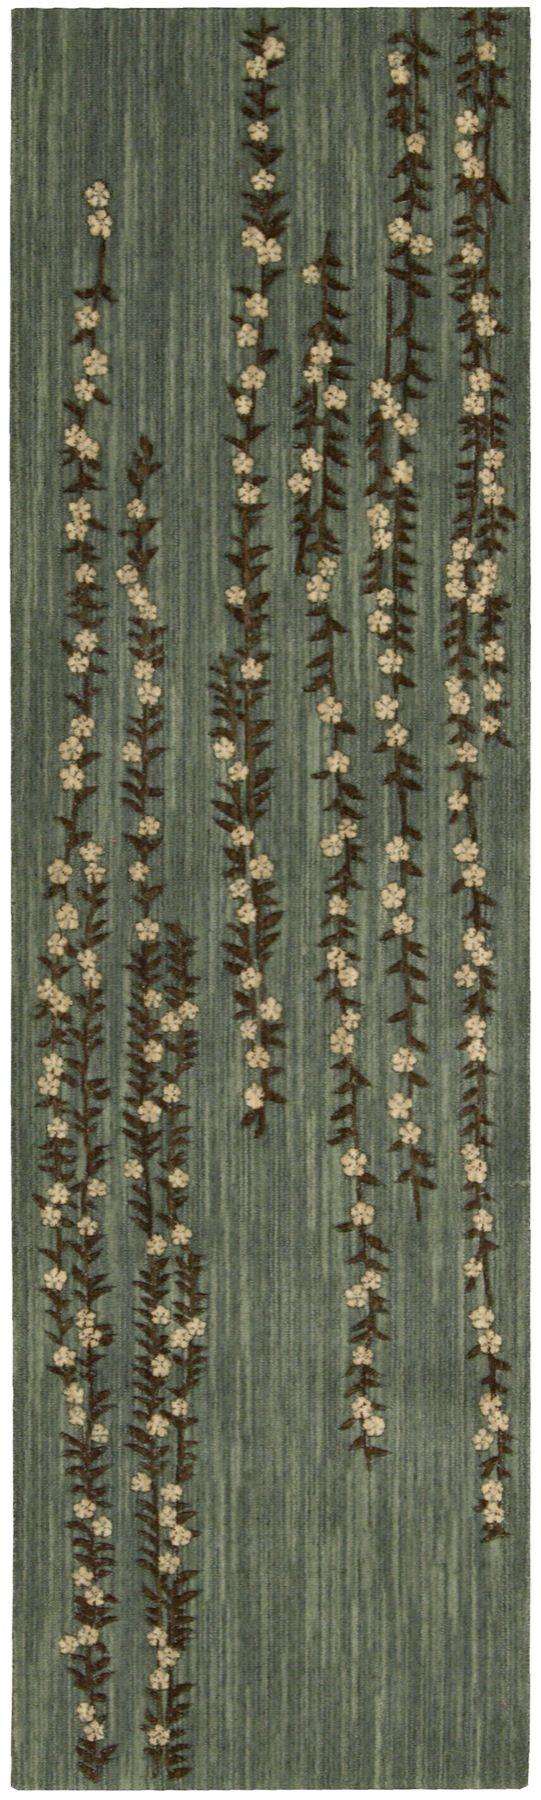 nourison radiant impression transitional area rug collection